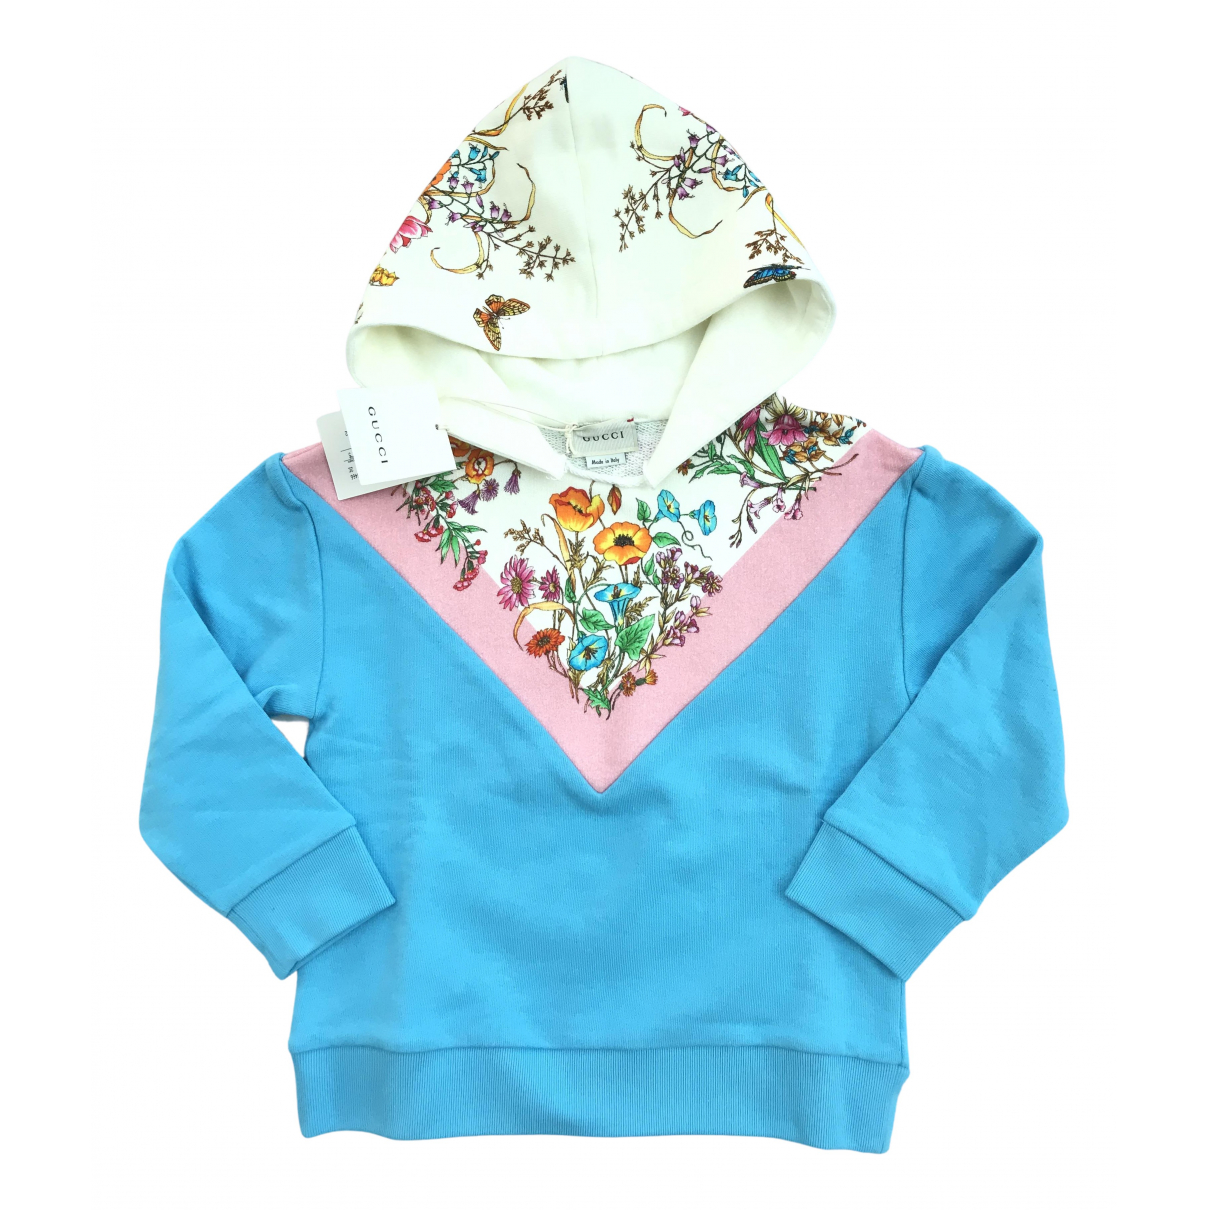 Gucci N Blue Cotton Knitwear for Kids 5 years - up to 108cm FR